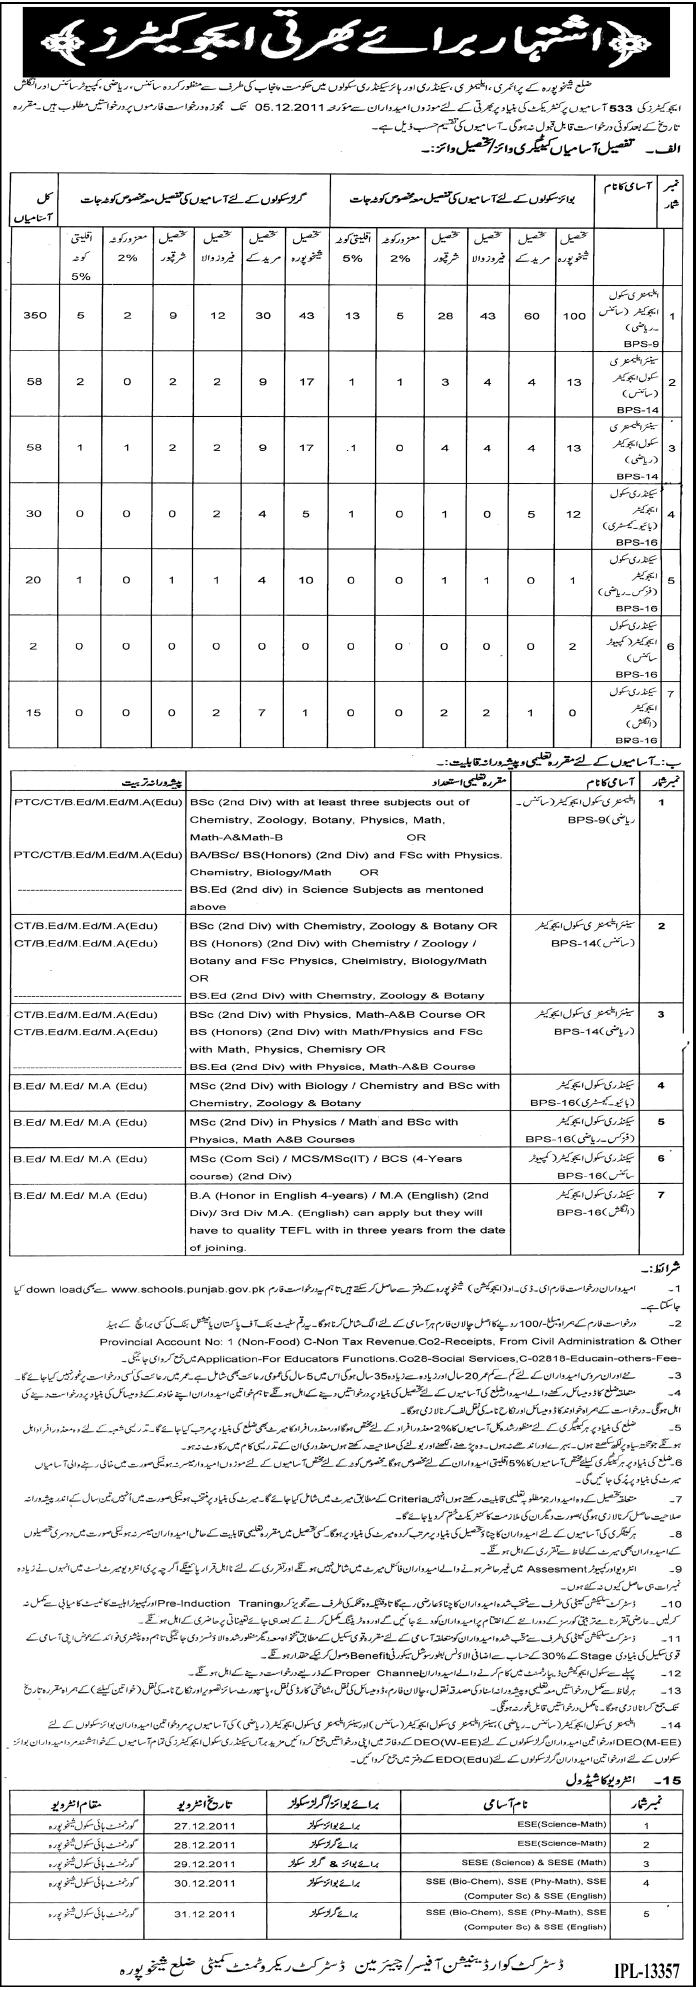 School Educators Jobs District Sheikhupura – Punjab Education Department